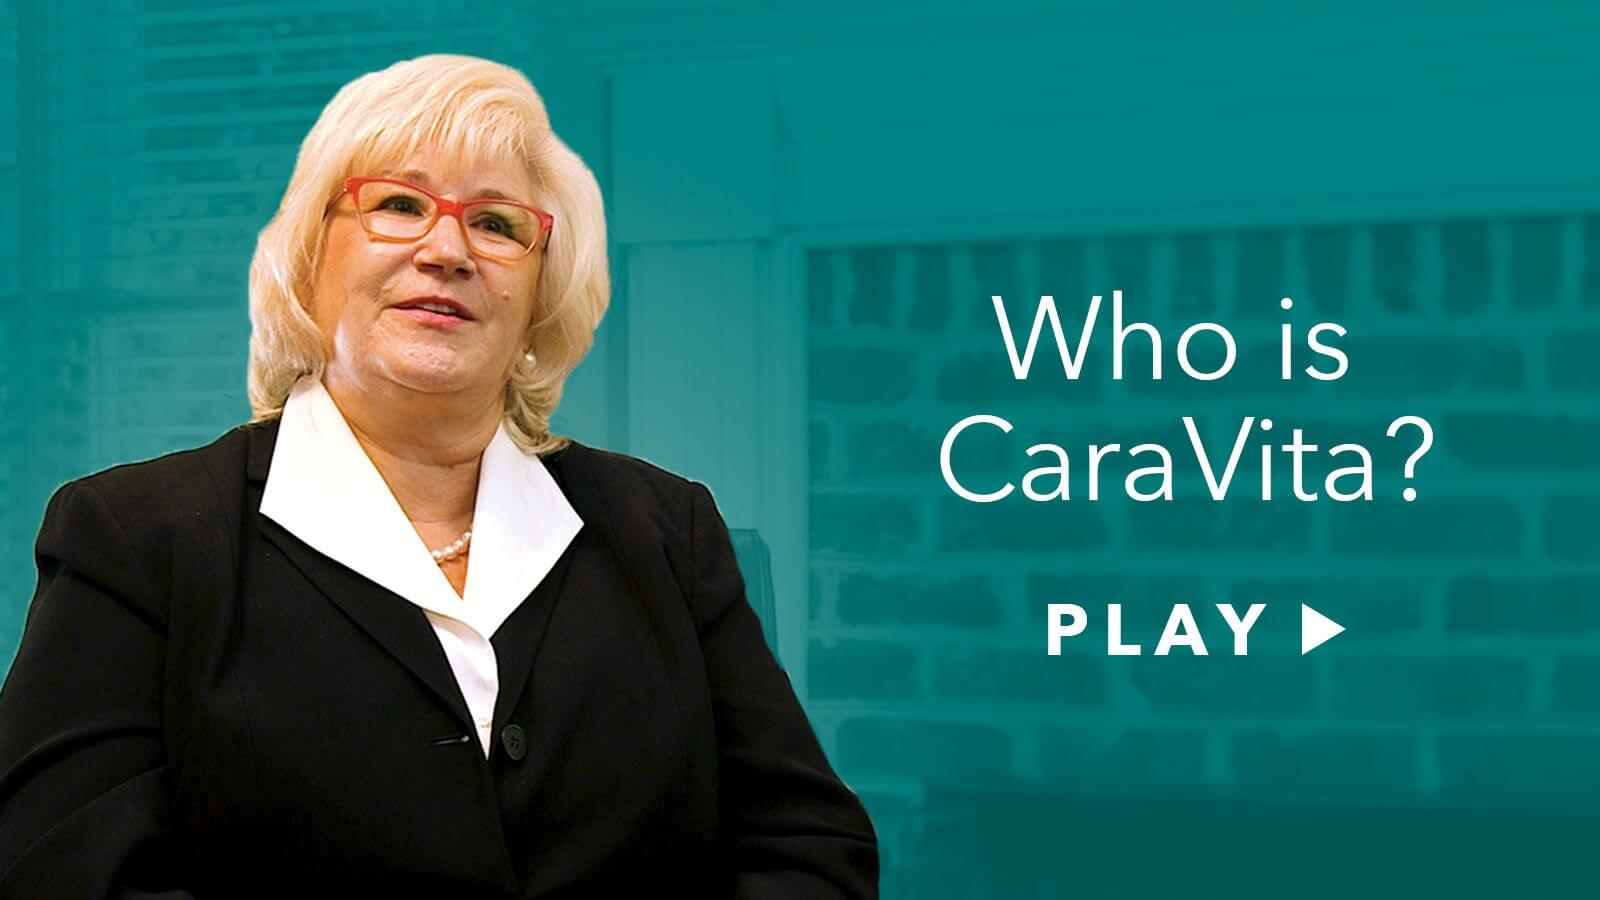 Who is CaraVita thumbnail picture for video